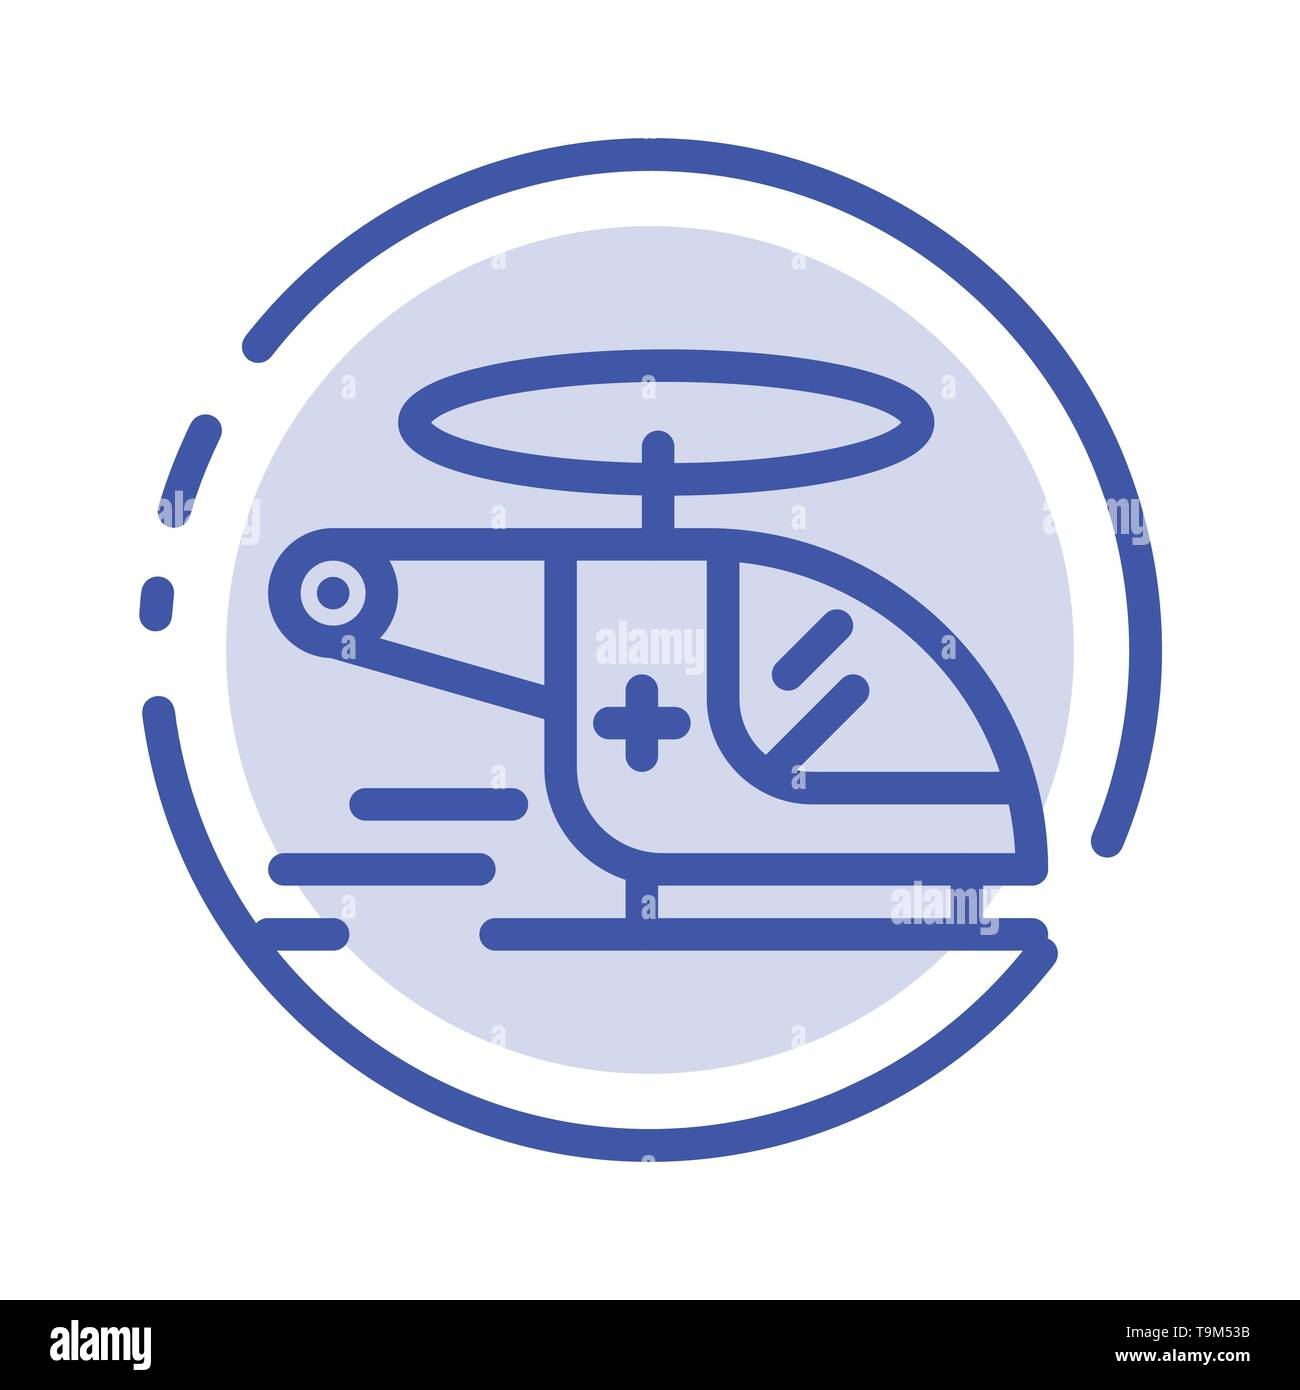 Helicopter, Chopper, Medical, Ambulance, Air Blue Dotted Line Line Icon - Stock Image